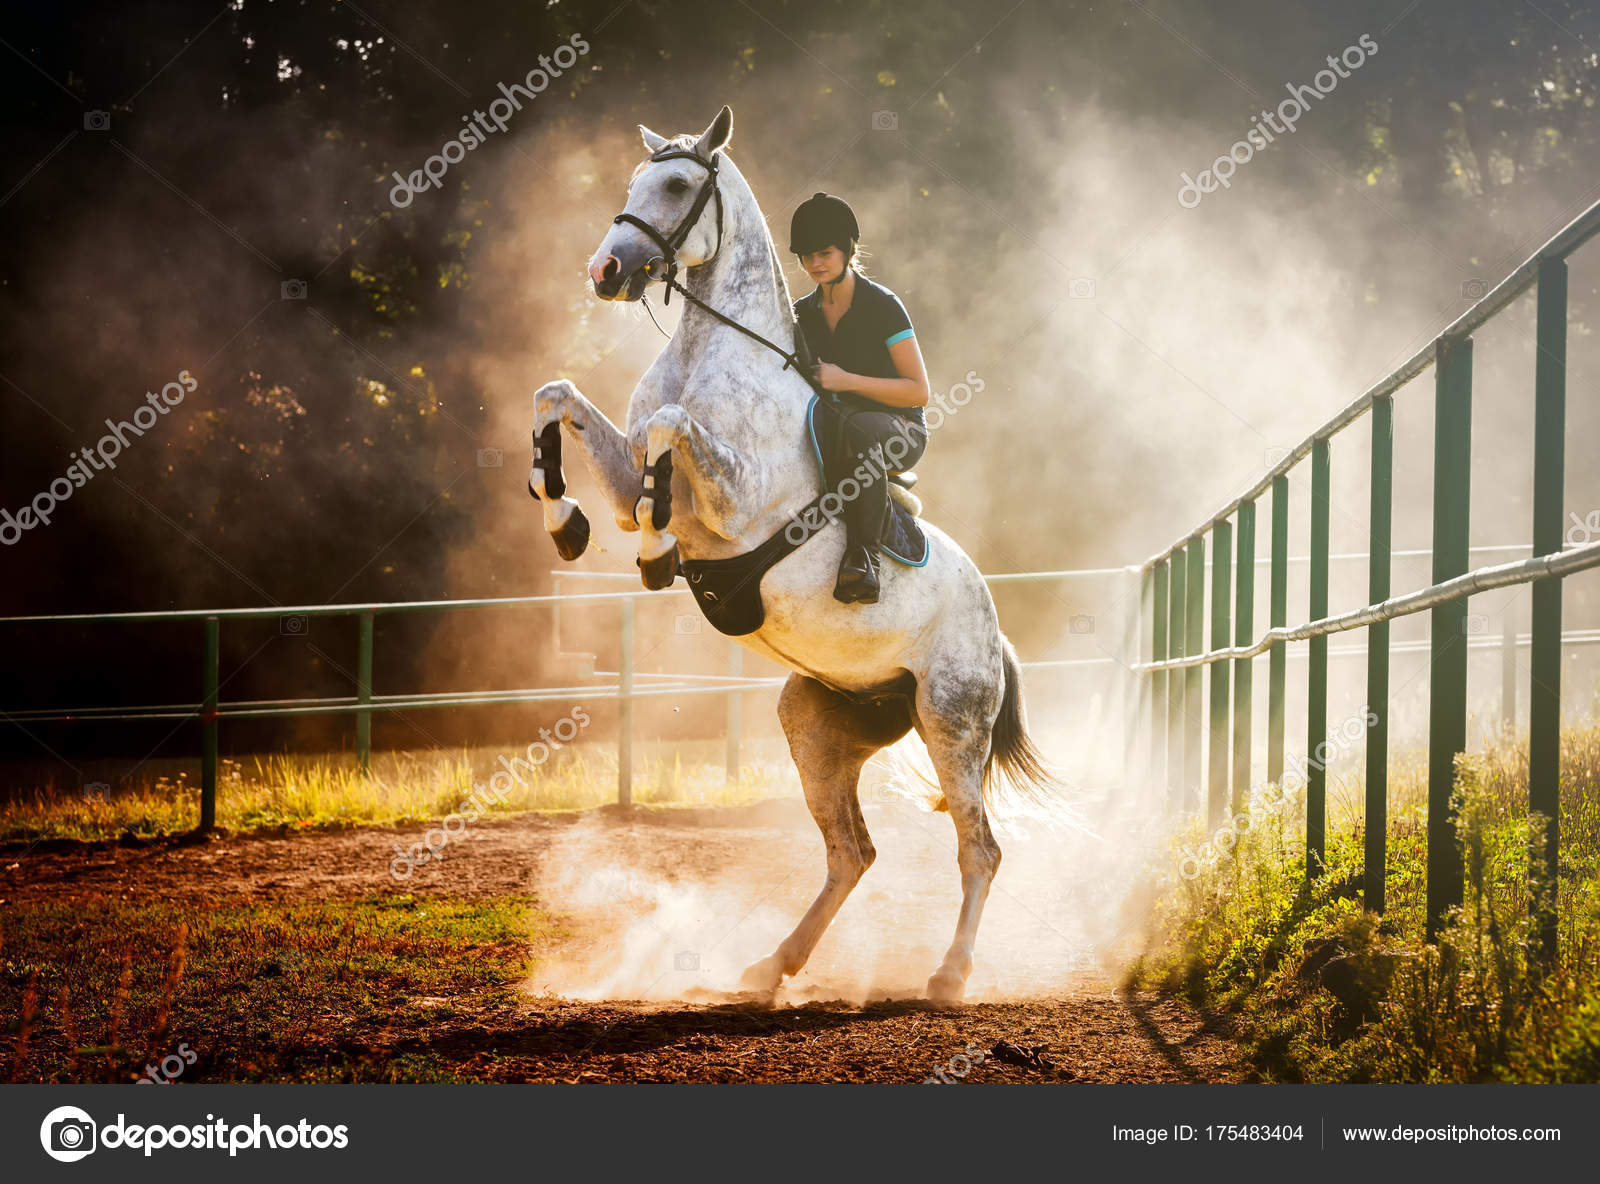 Woman Riding A Horse In Dust Beautiful Pose On Hind Legs Stock Photo C Leszekglasner 175483404